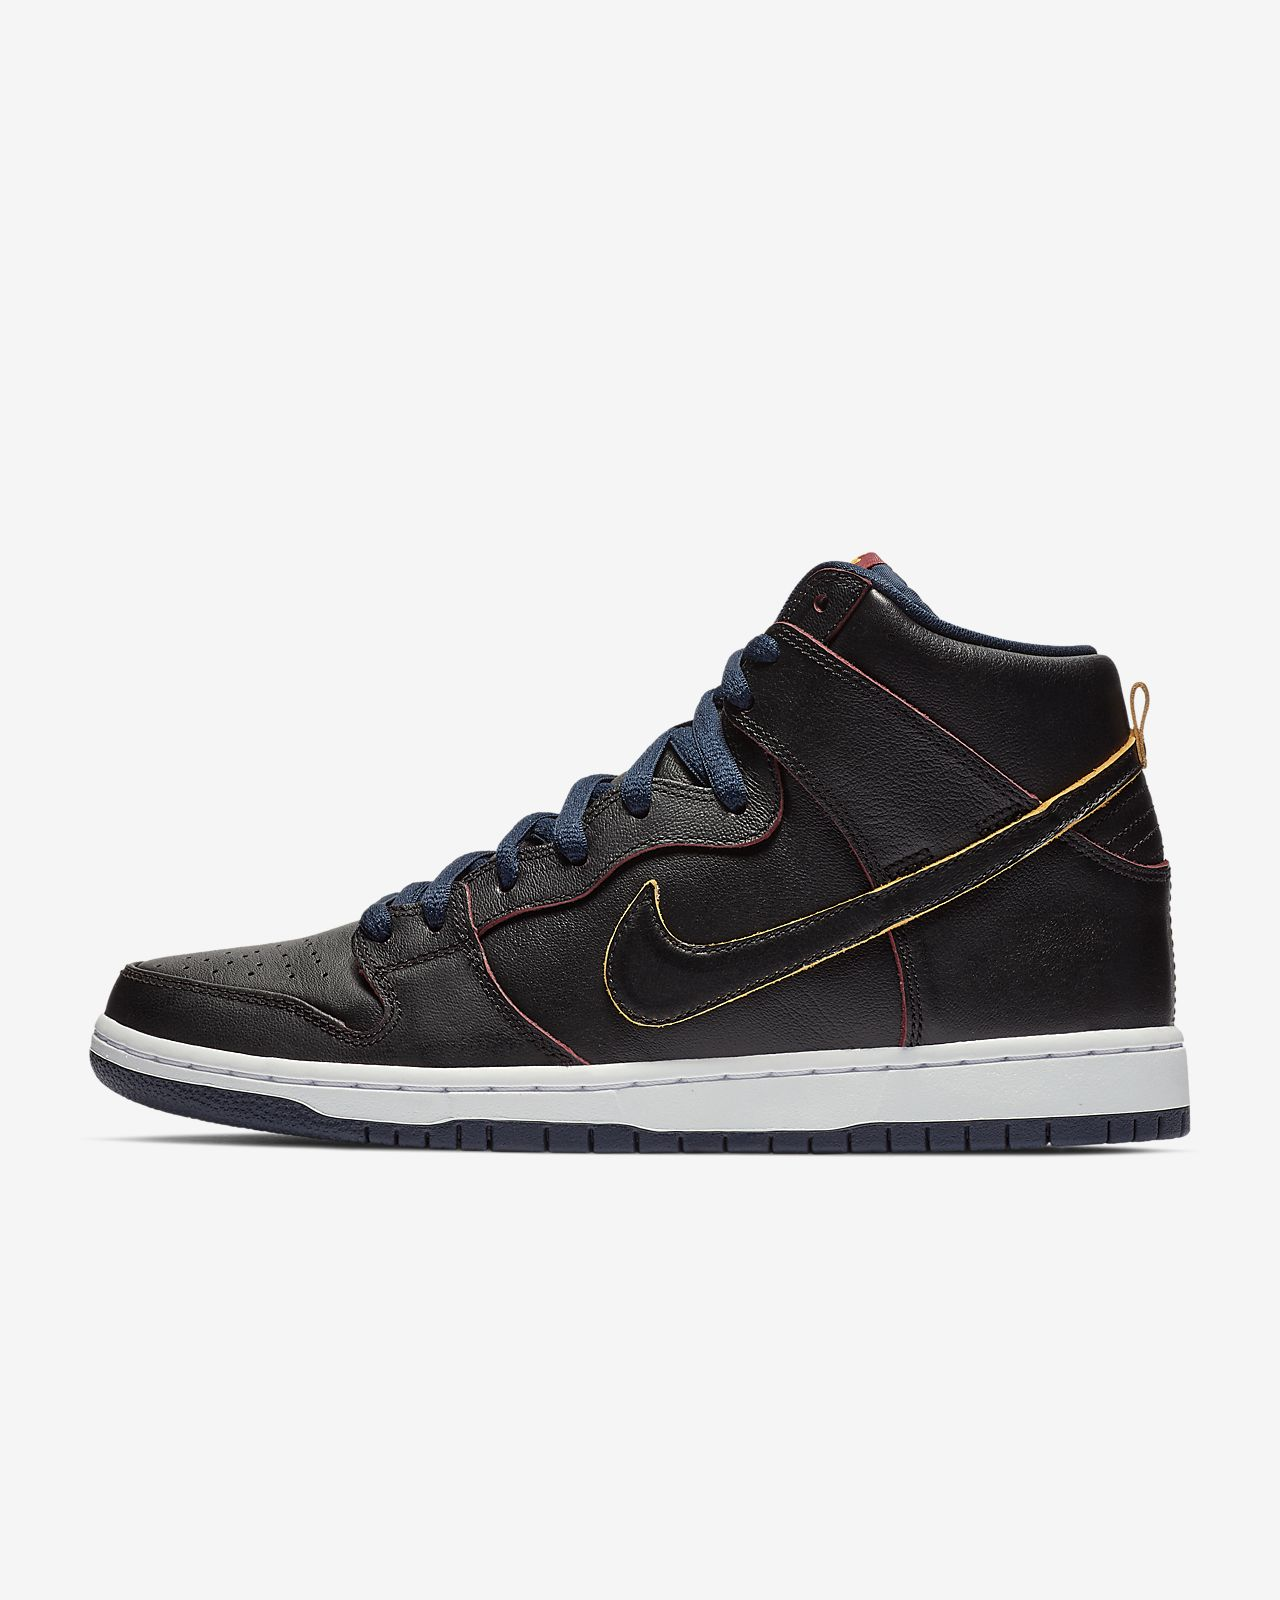 incredible prices 100% top quality check out nike sb dunk black shoes for discount billig